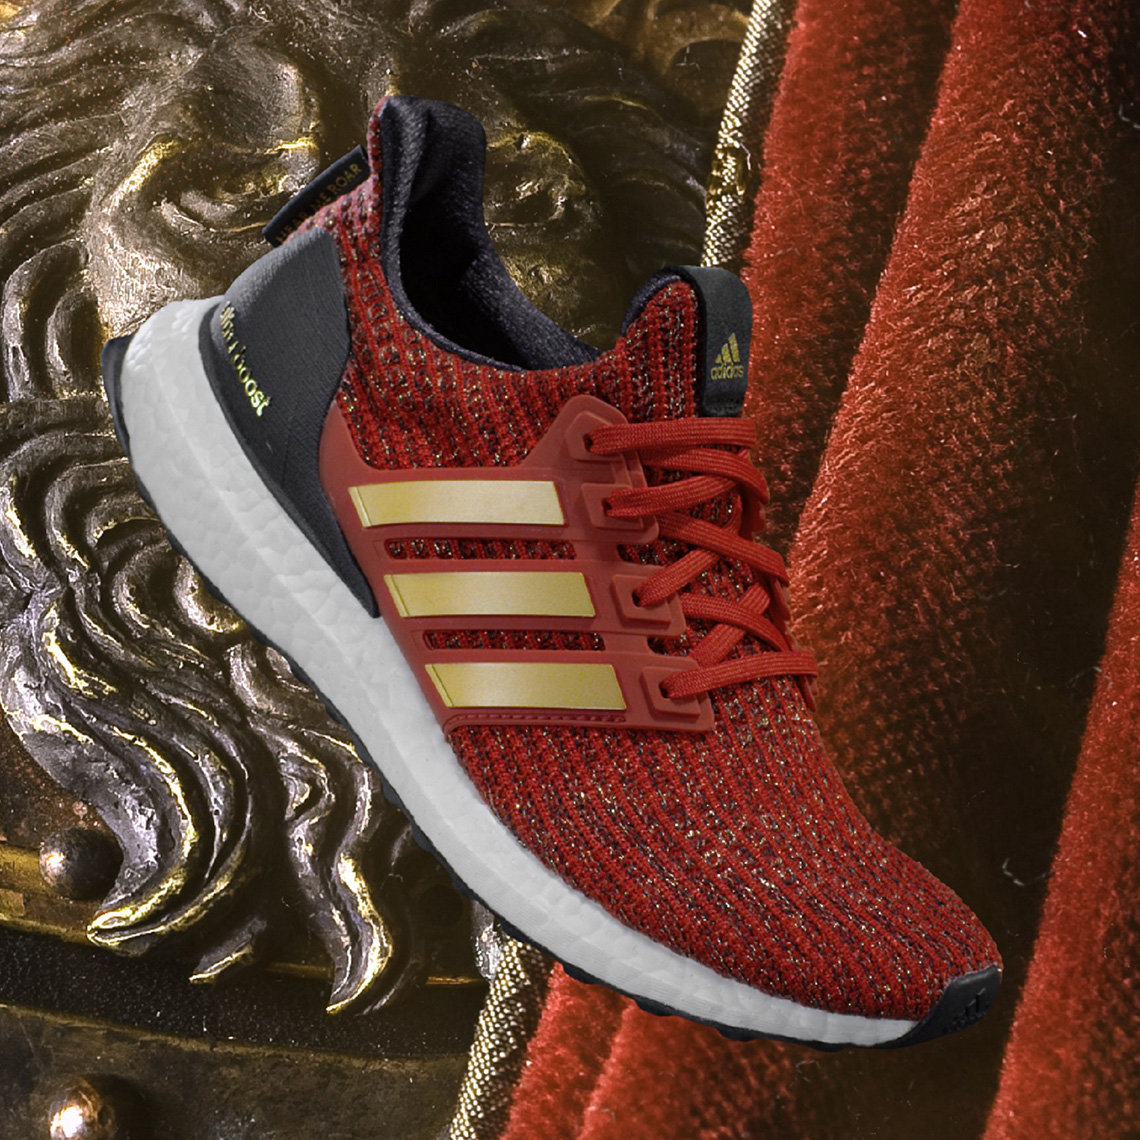 ULTRABOOST ADIDAS RUNNING X GAME OF THRONES LANNISTER.